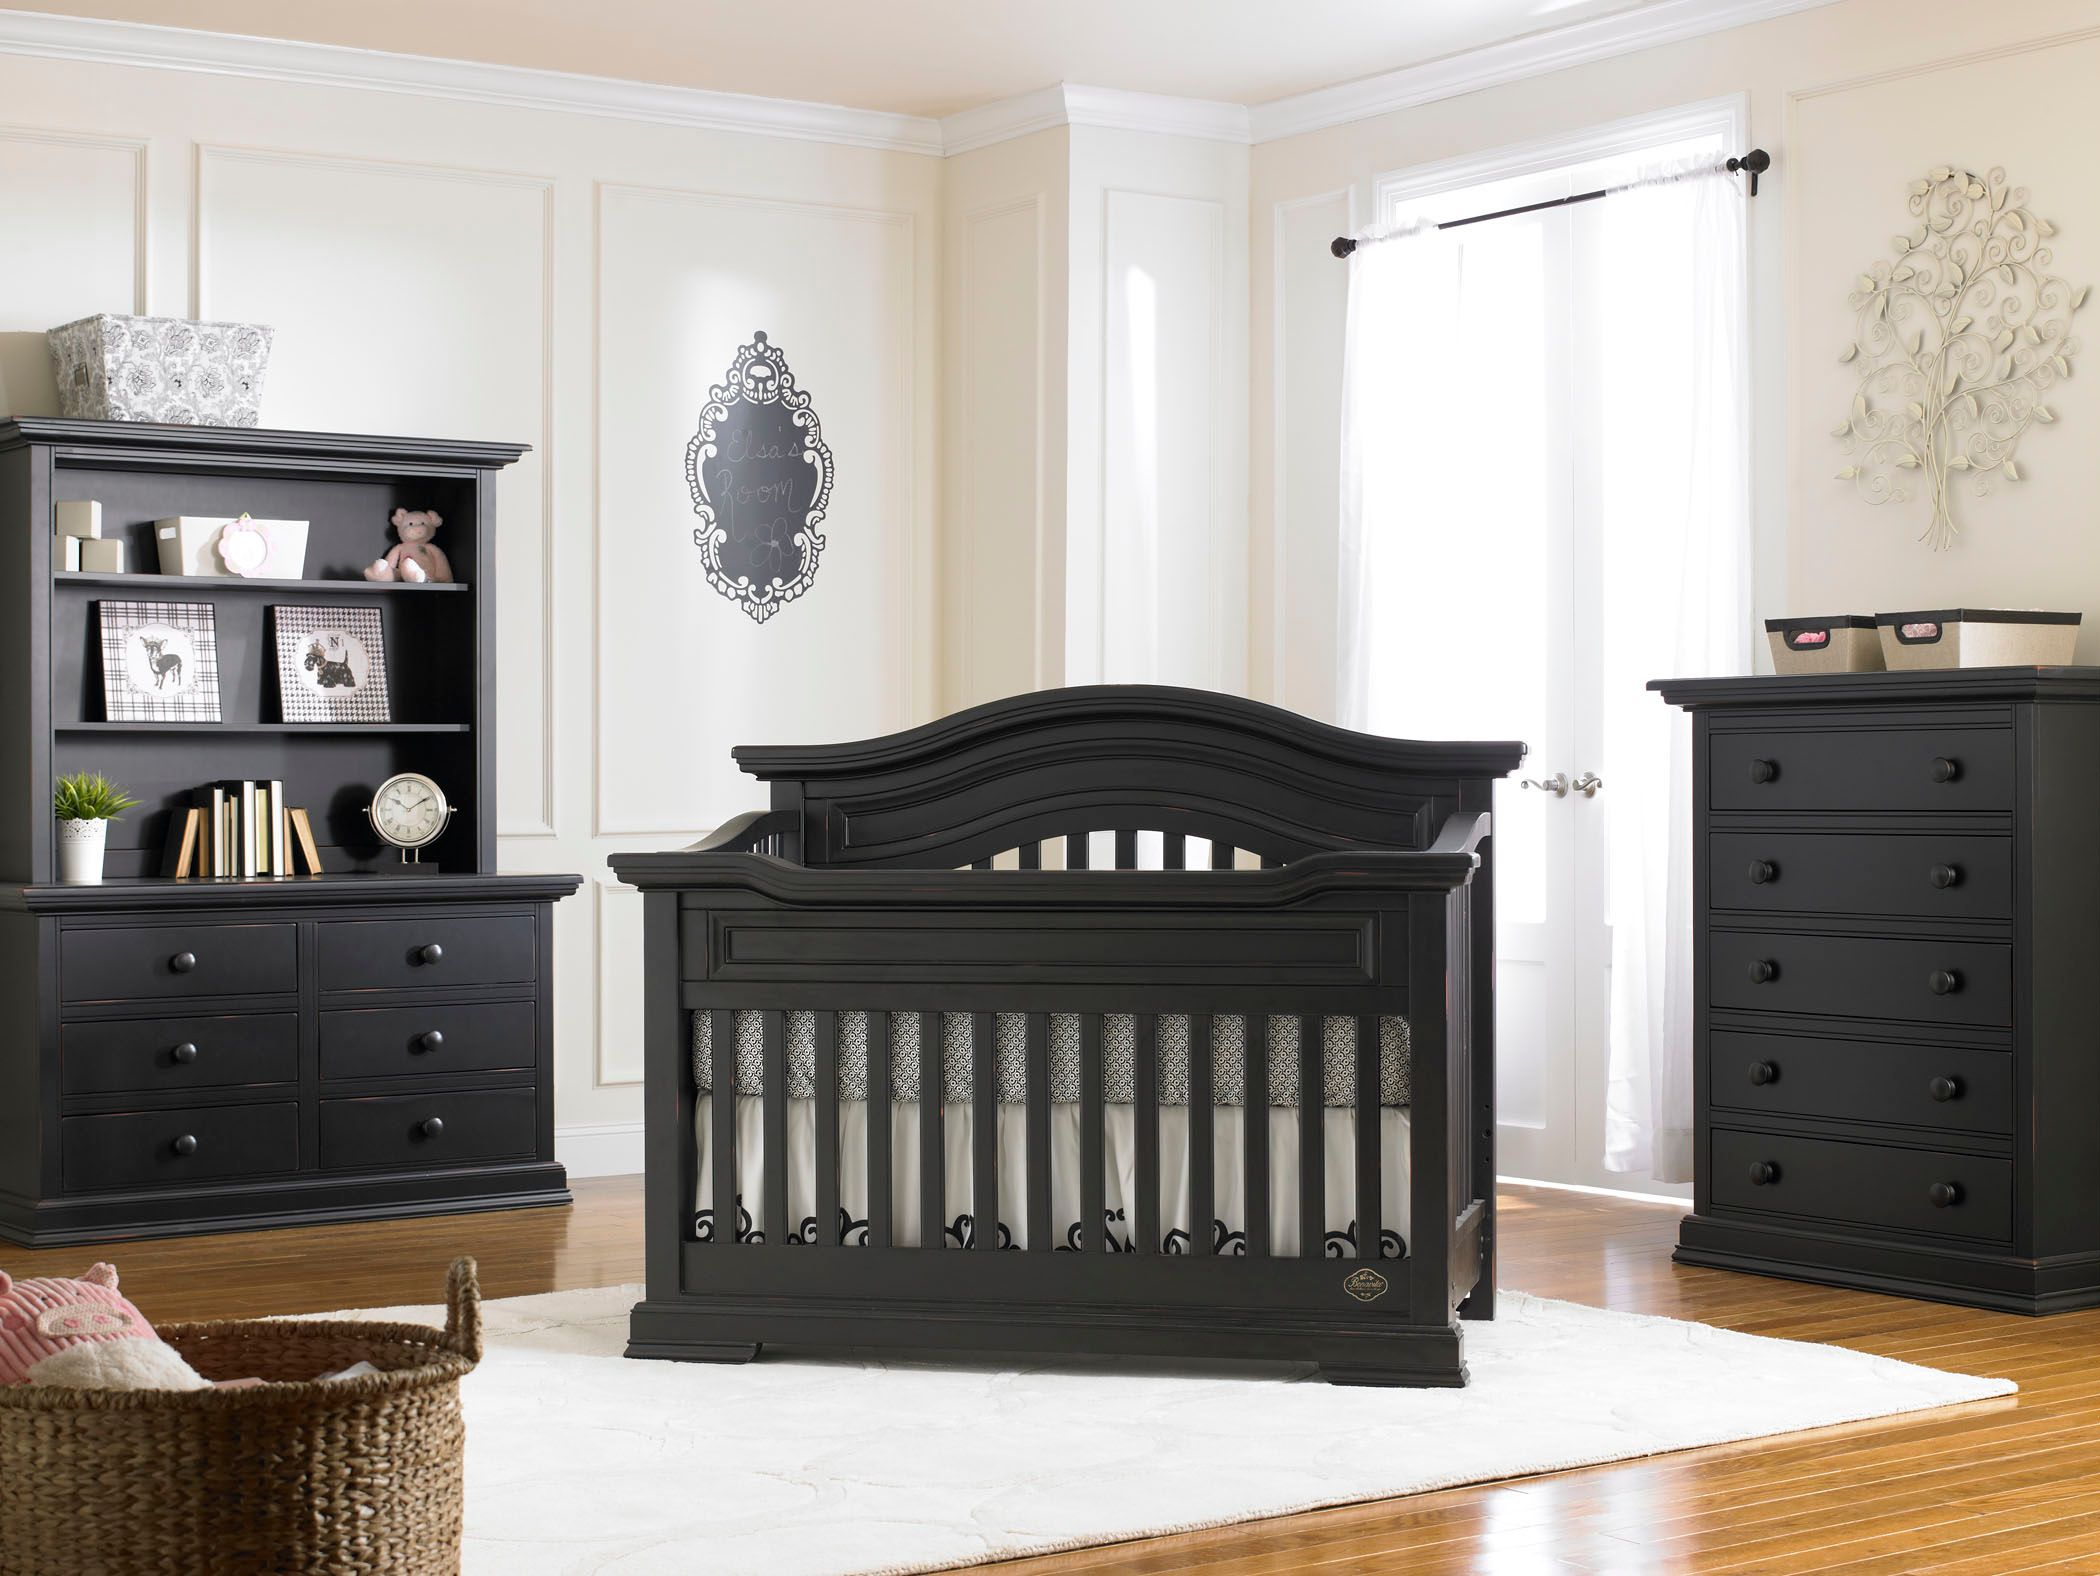 Belmont Lifestyle Crib From Bonavita Collection Will Revolutionize